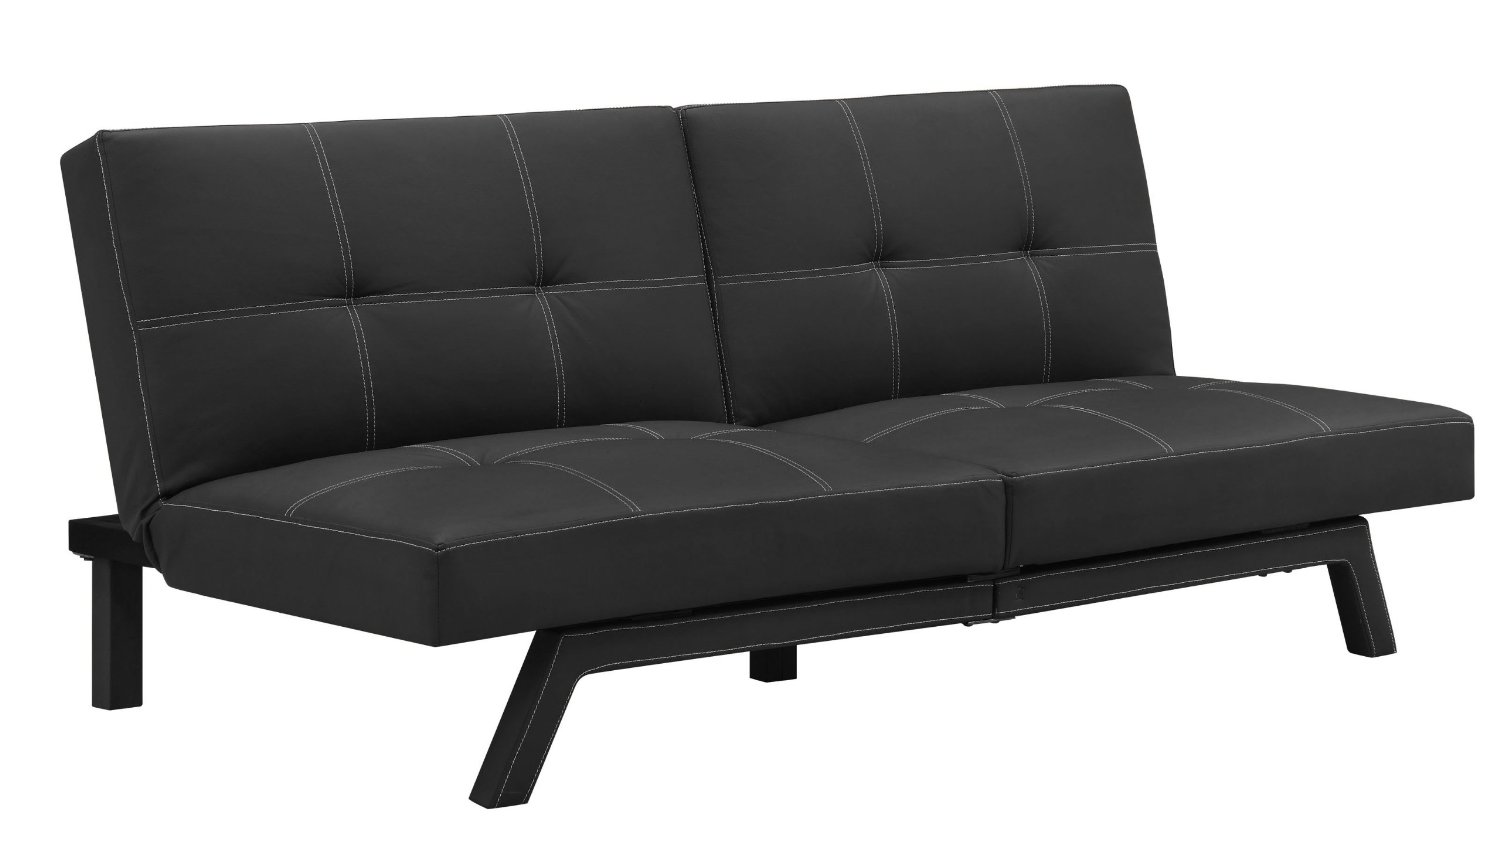 Buy cheap sofa cheap modern sofa for Reasonable furniture